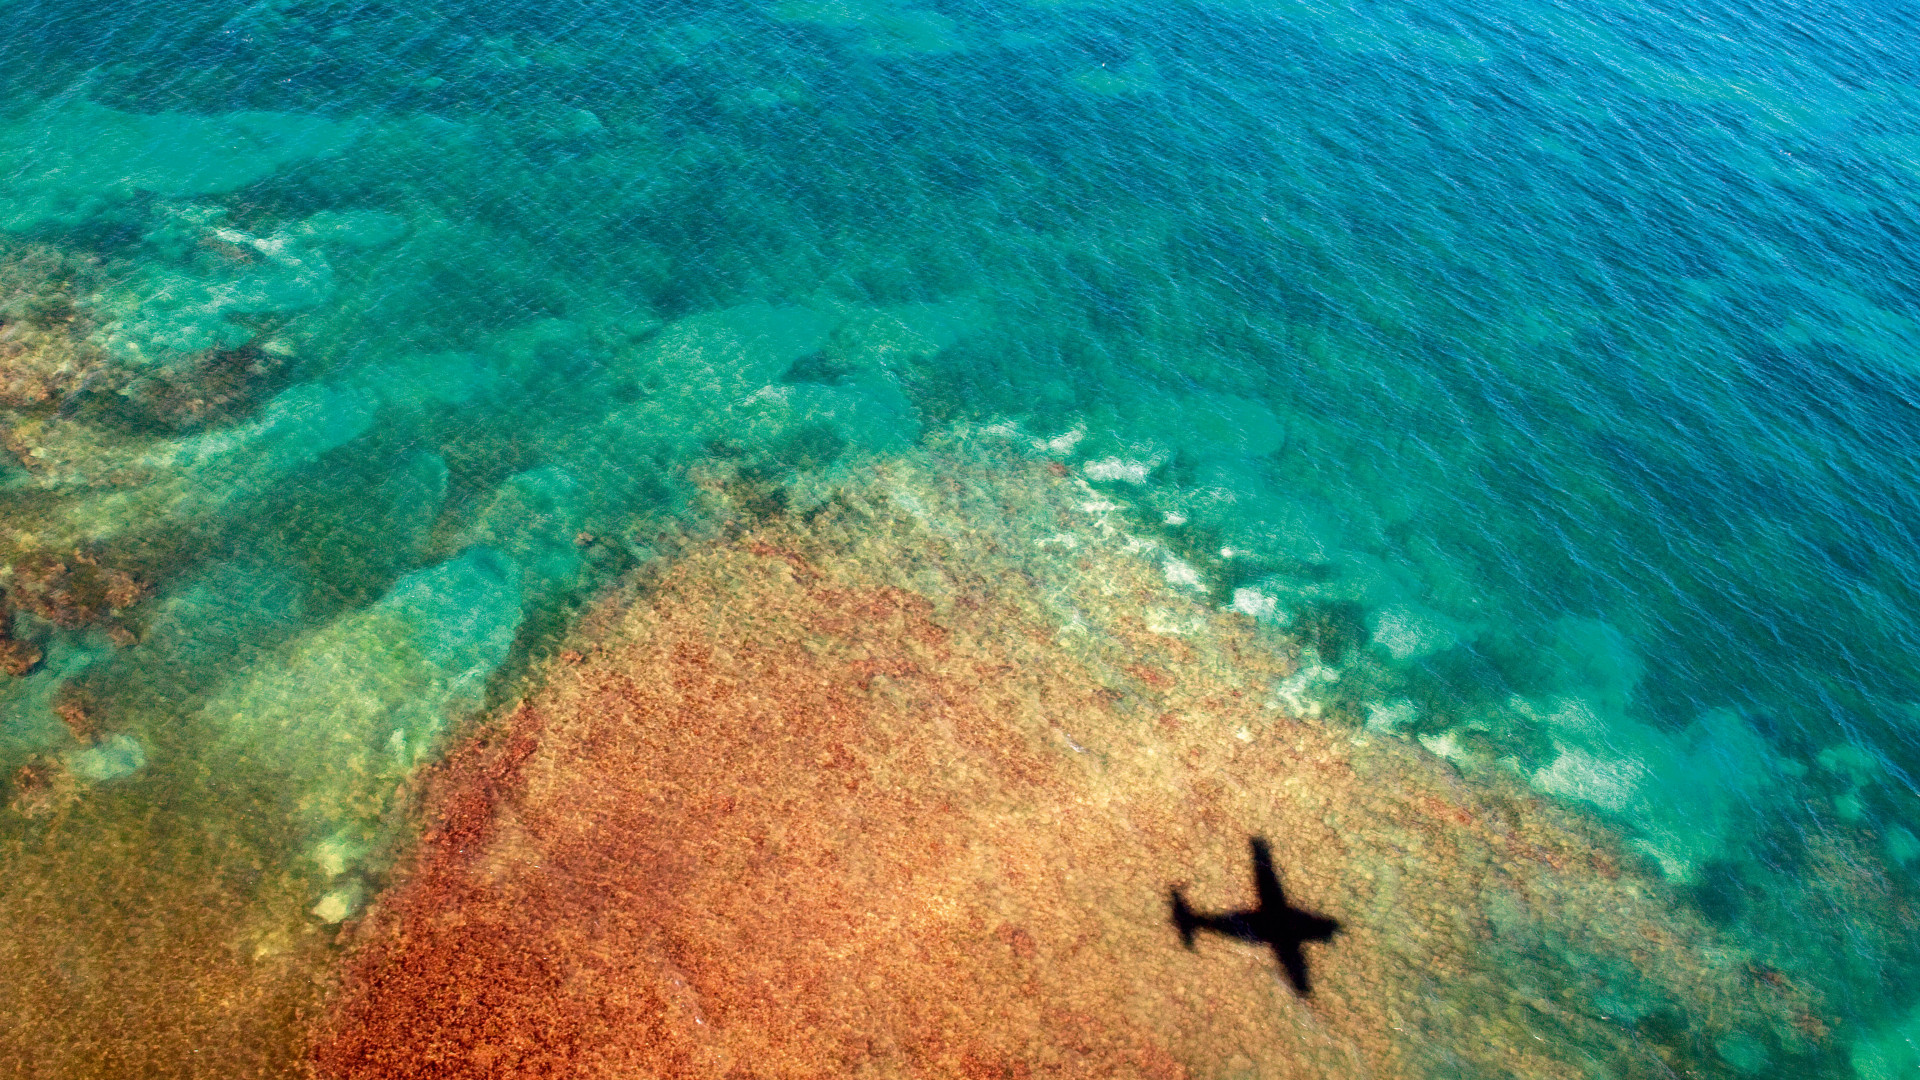 A plane flying over the sea towards Vieques island